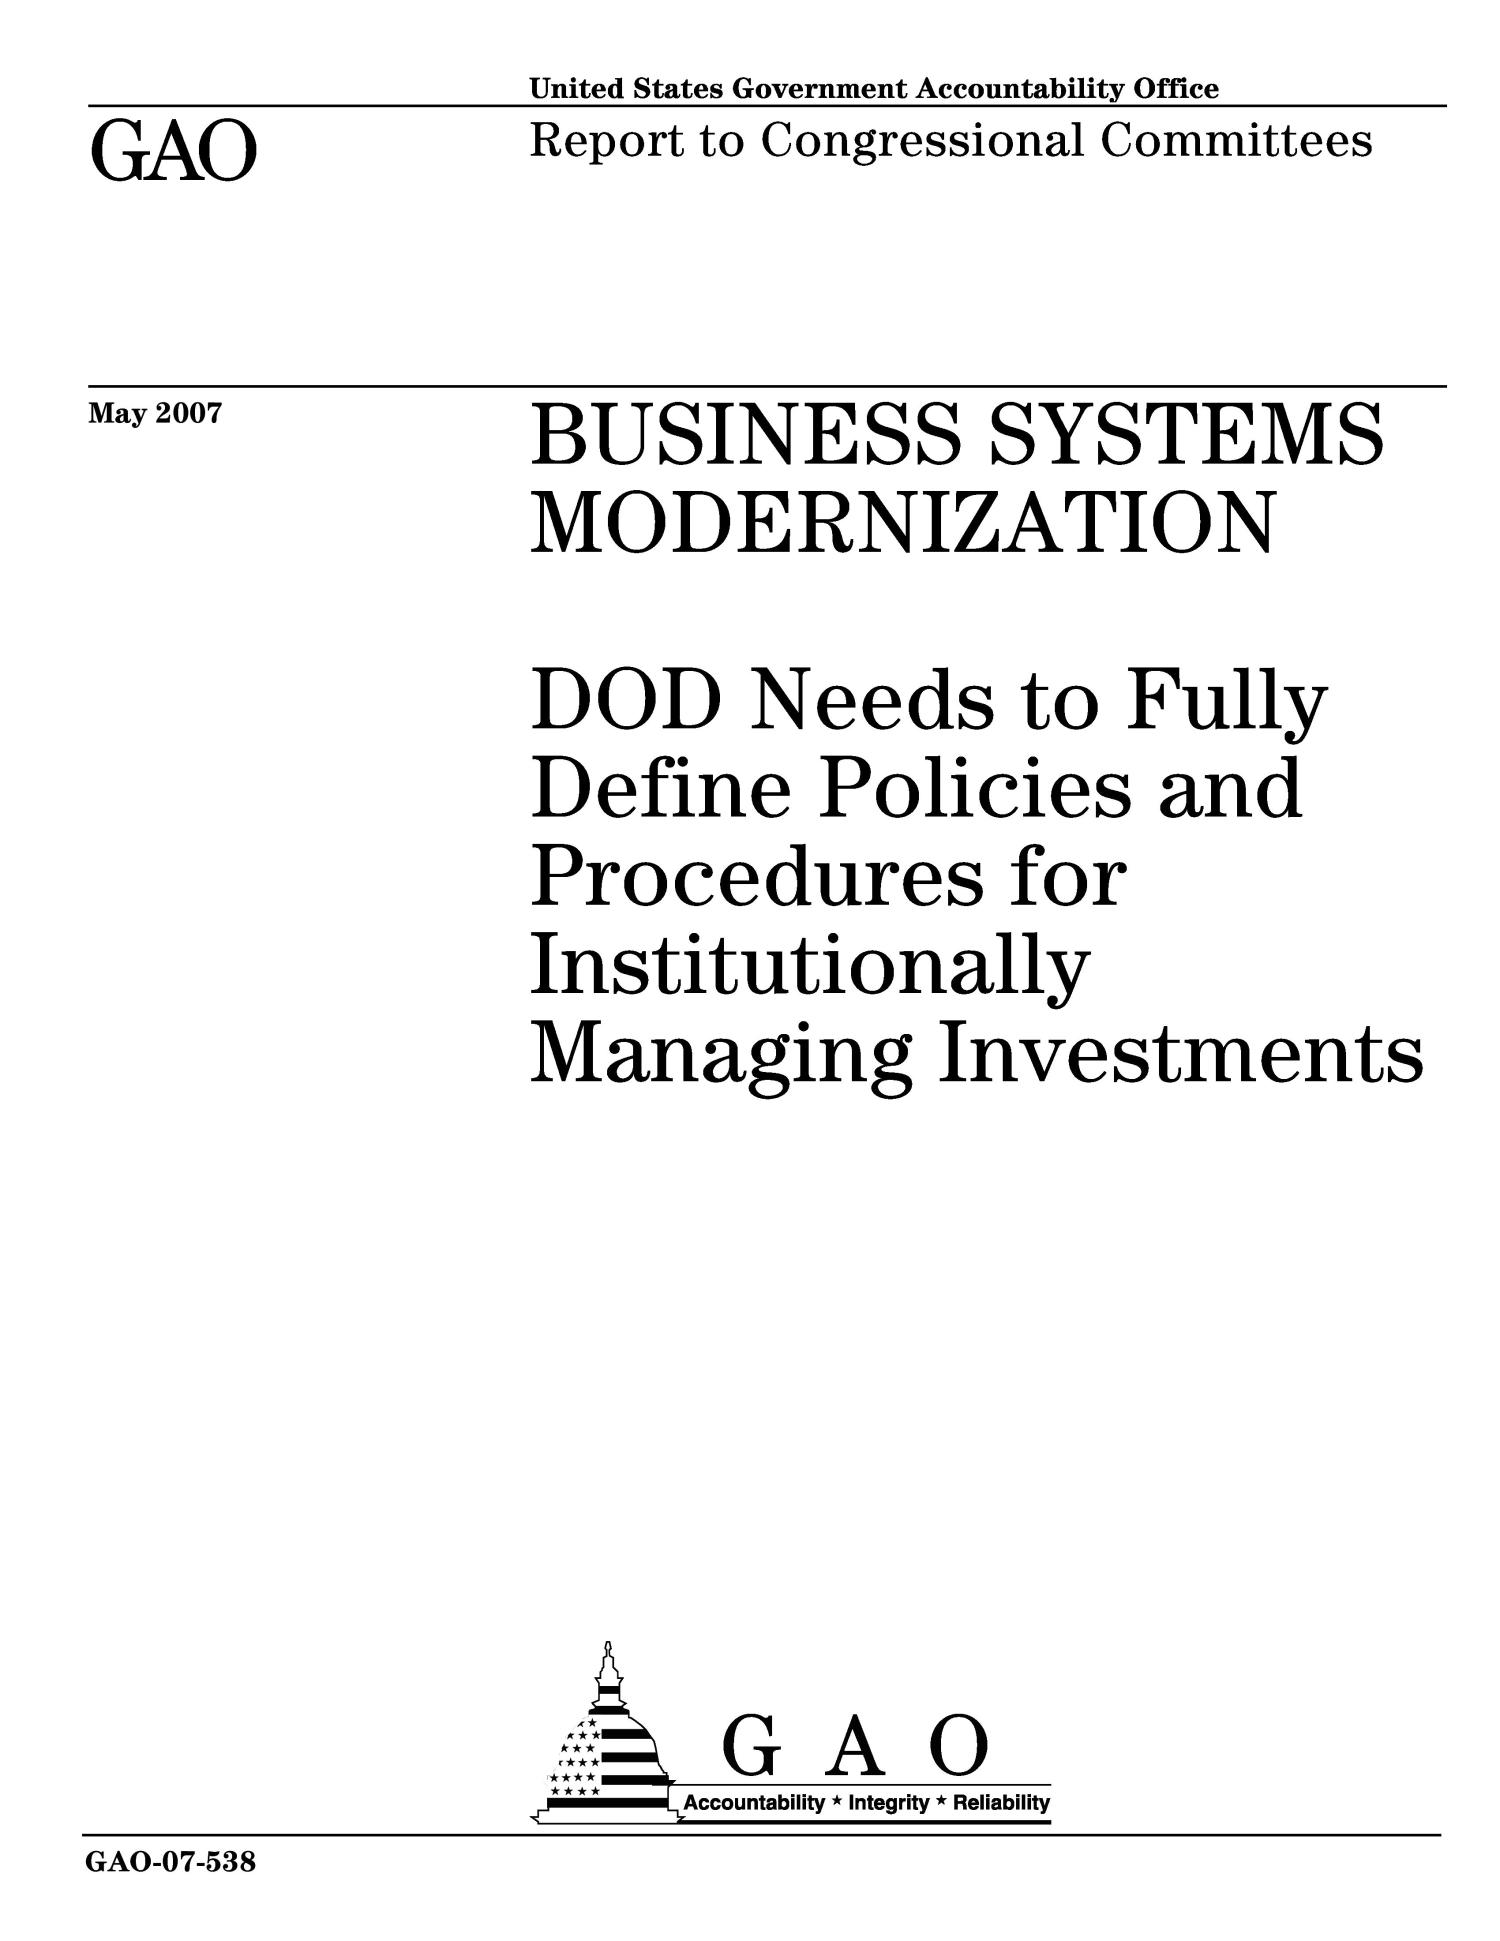 Business Systems Modernization: DOD Needs to Fully Define Policies and Procedures for Institutionally Managing Investments                                                                                                      [Sequence #]: 1 of 56